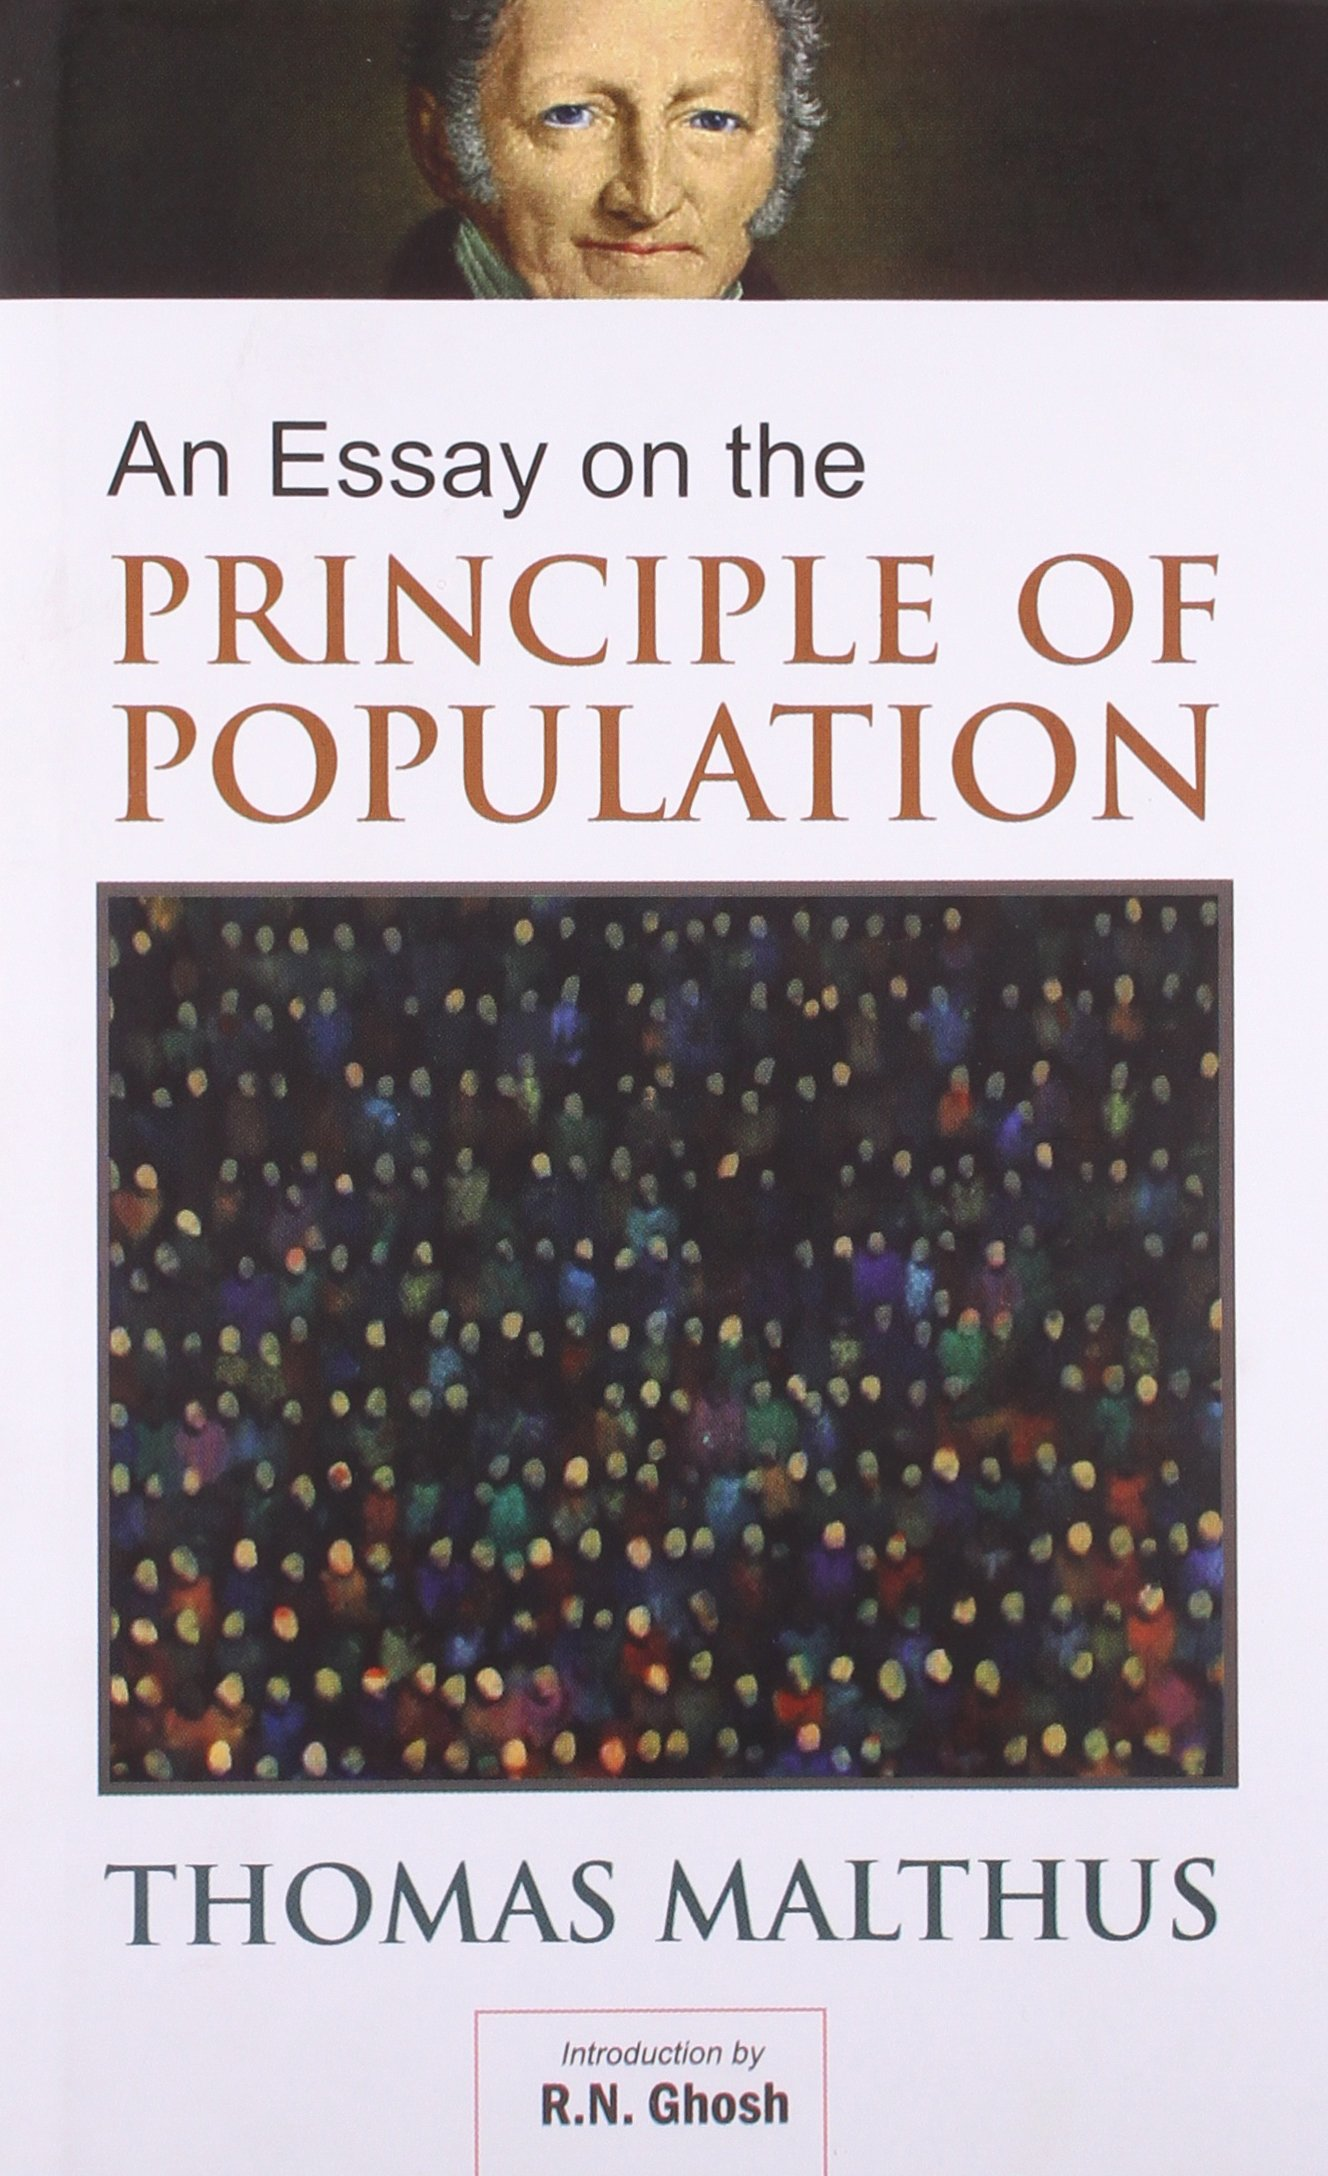 009 An Essay On The Principle Of Population Example Fascinating By Thomas Malthus Pdf In Concluded Which Following Full